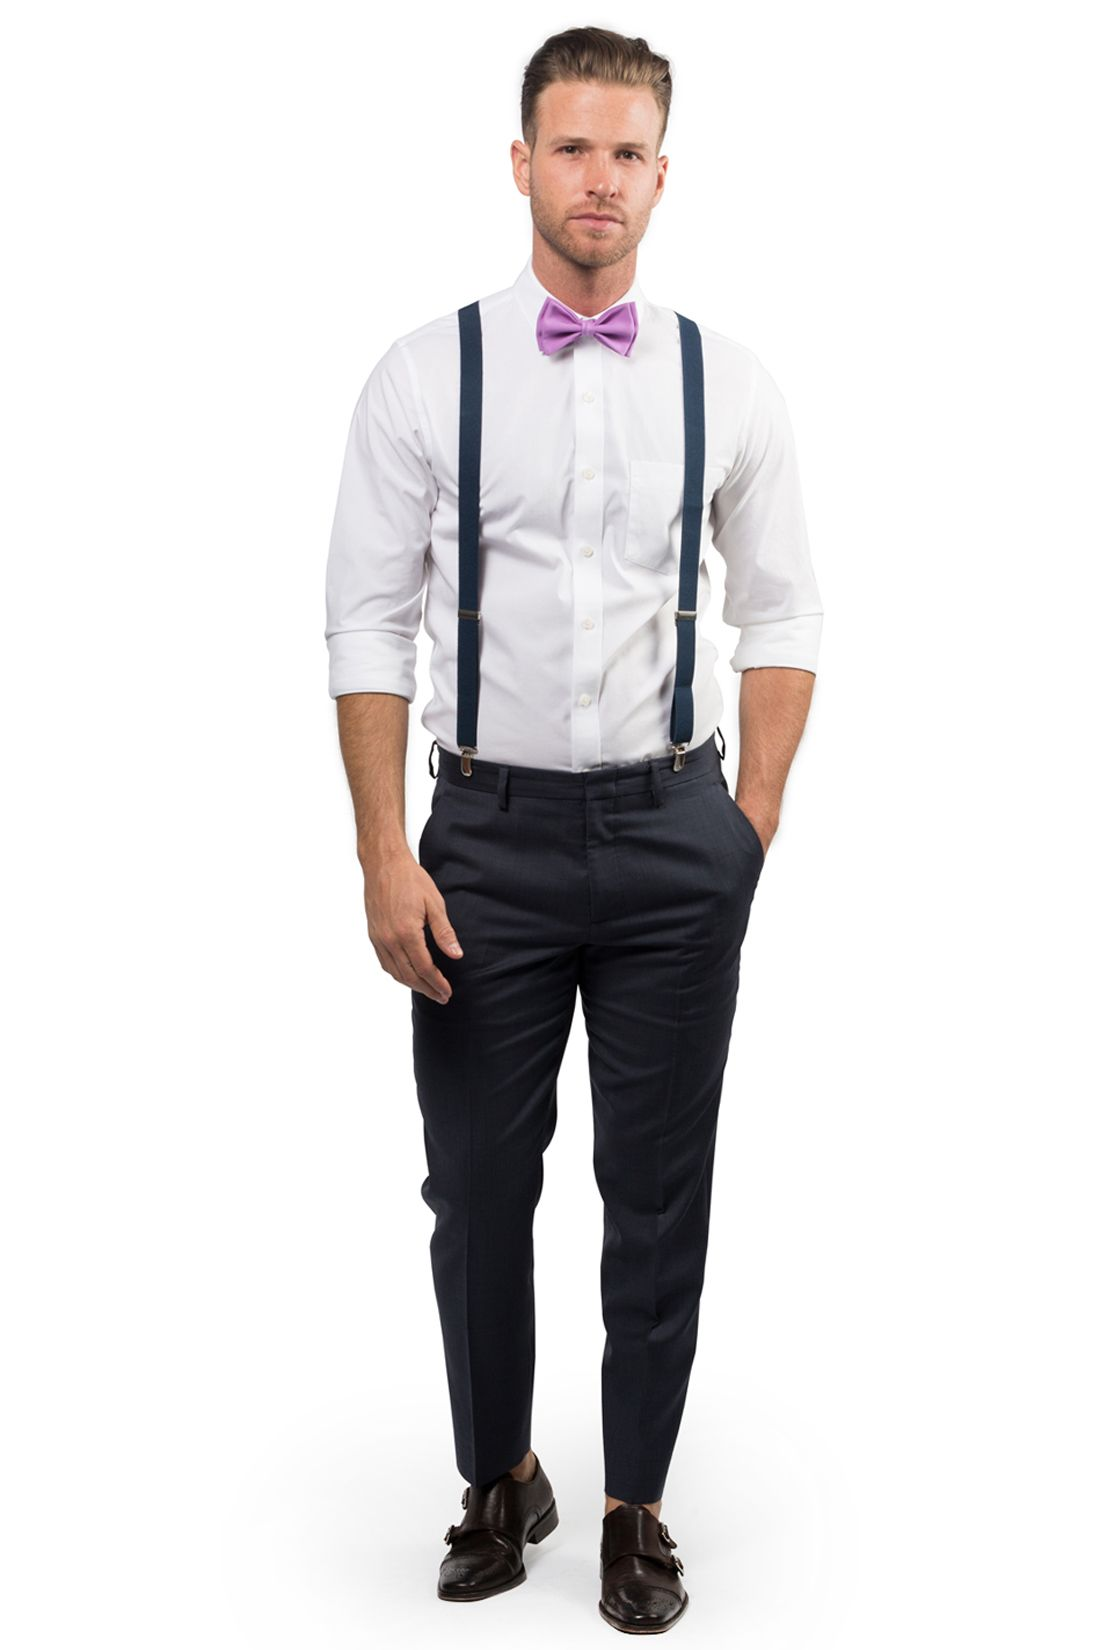 New Men/'s Formal Vest Tuxedo Waistcoat lavender/_Bowtie wedding prom party